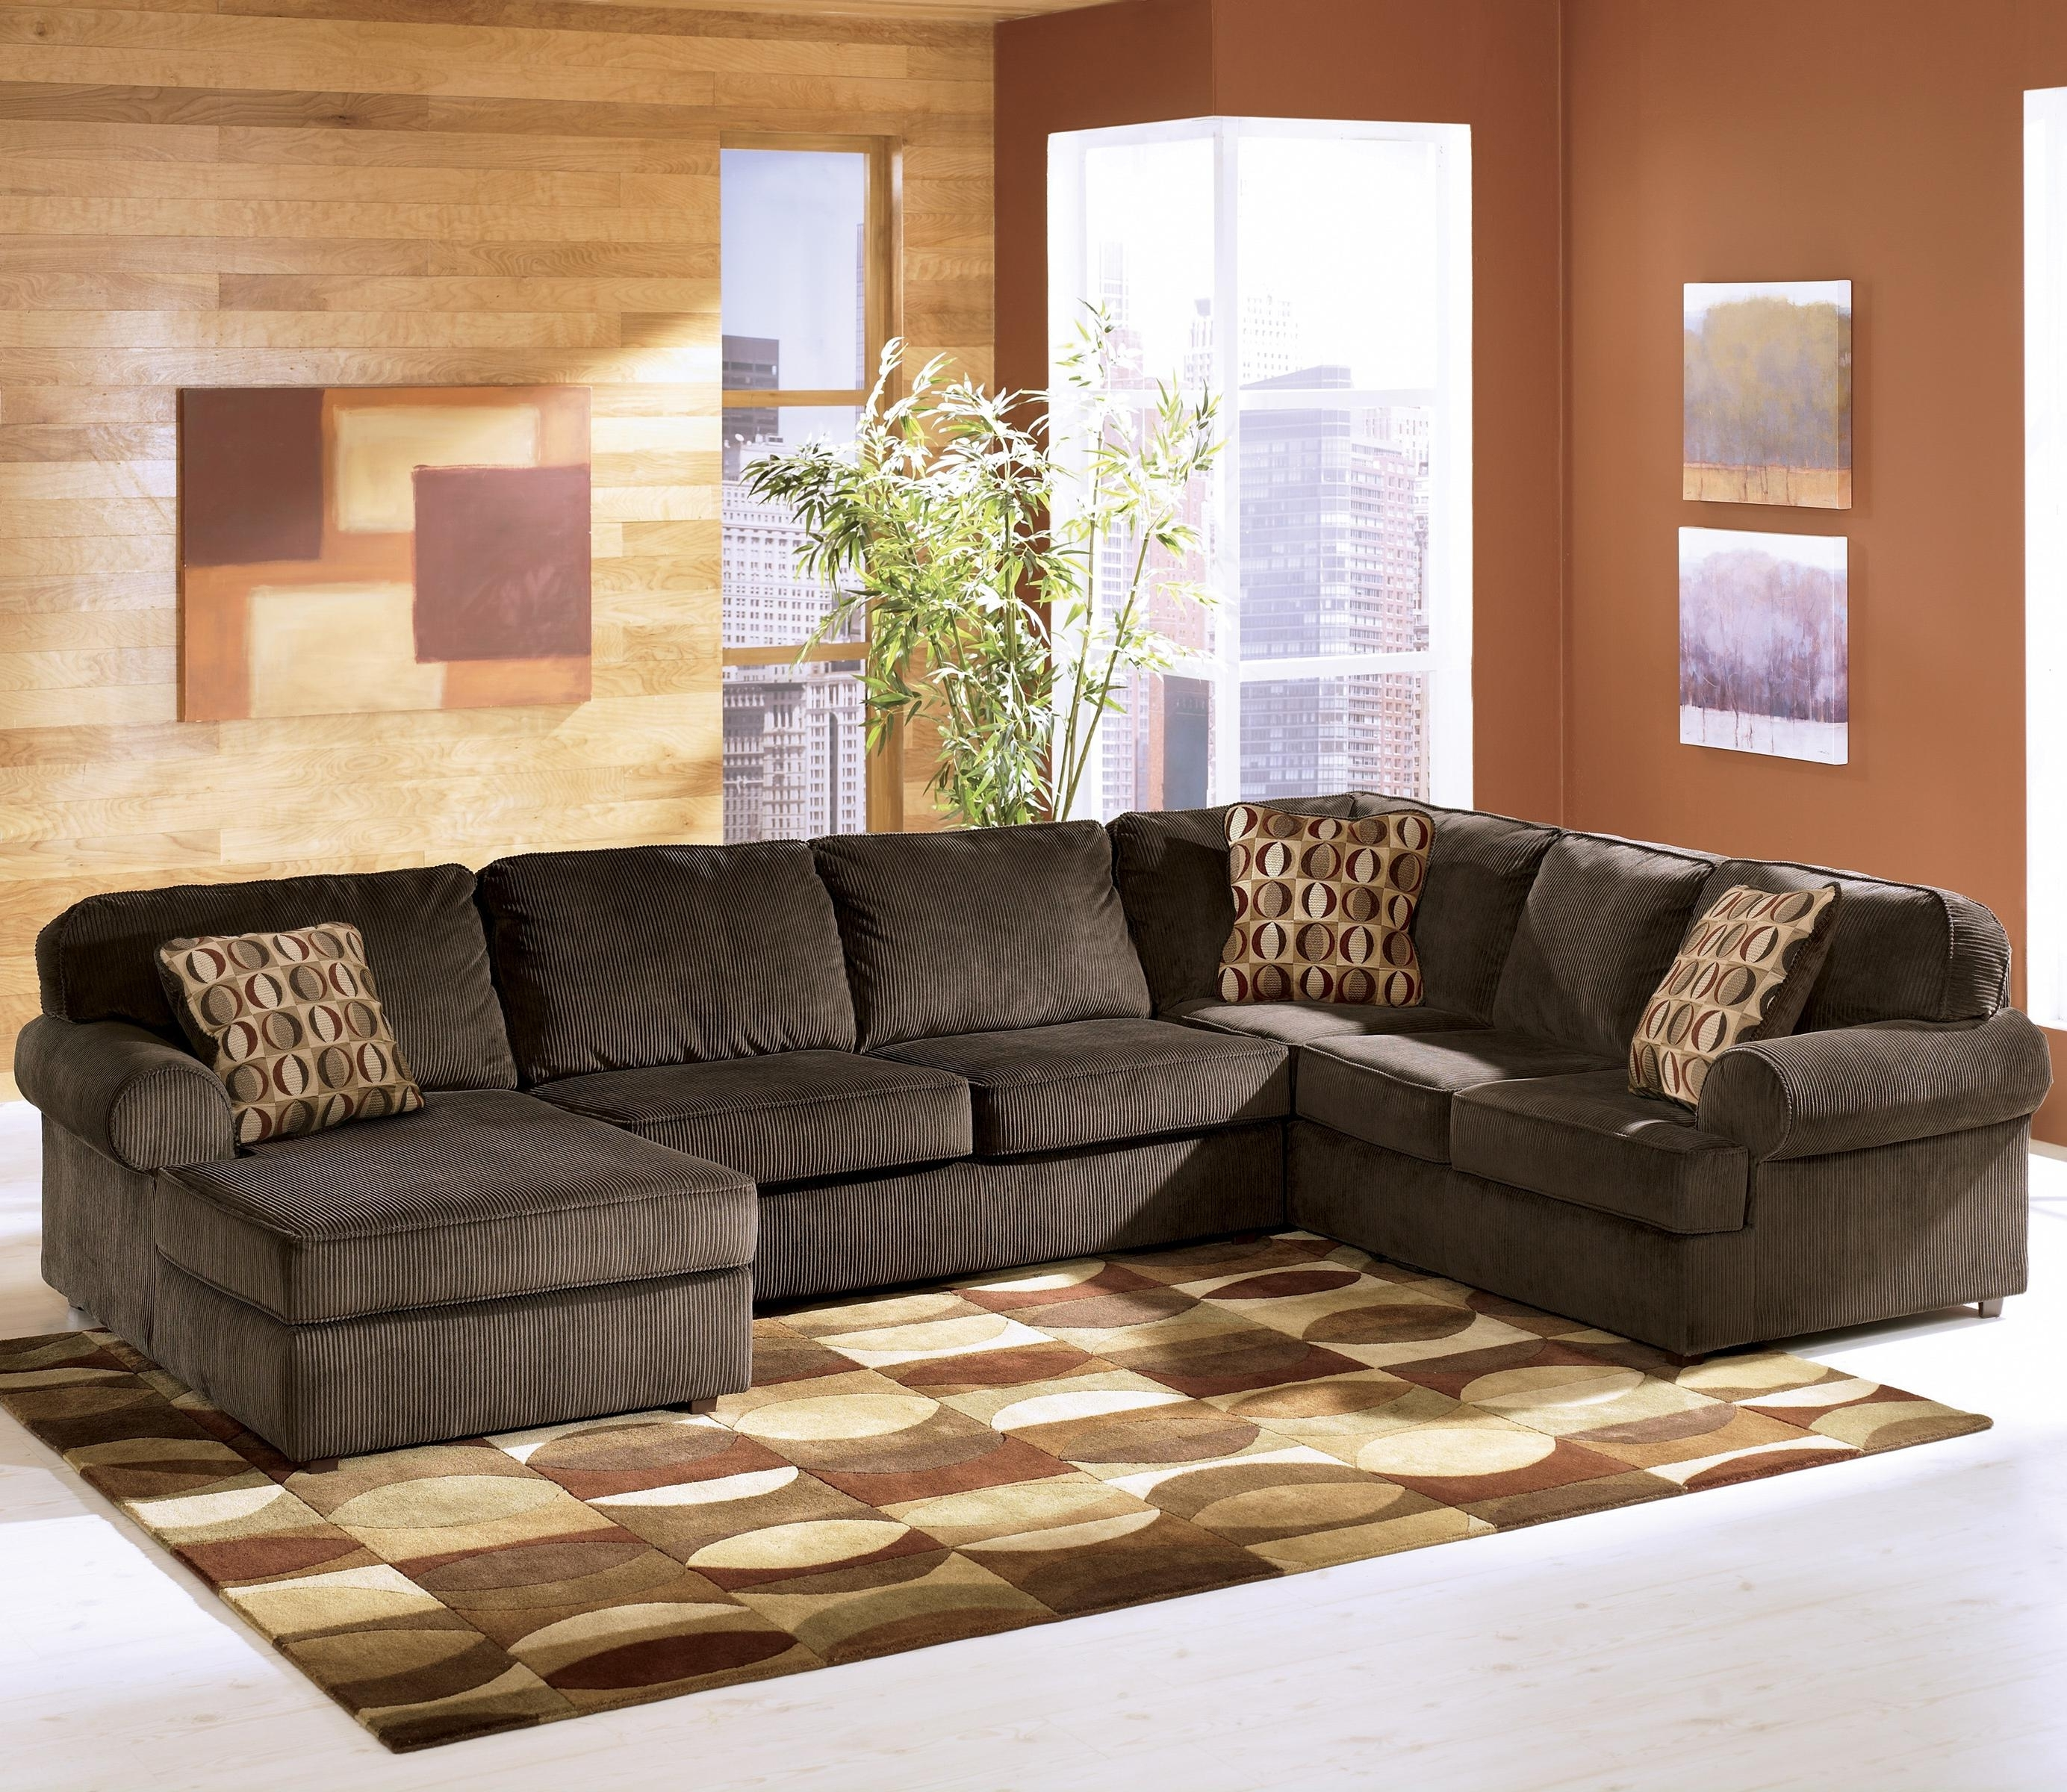 Popular Joplin Mo Sectional Sofas In Charlton Home® Brewster Sectional Https://www (View 9 of 15)